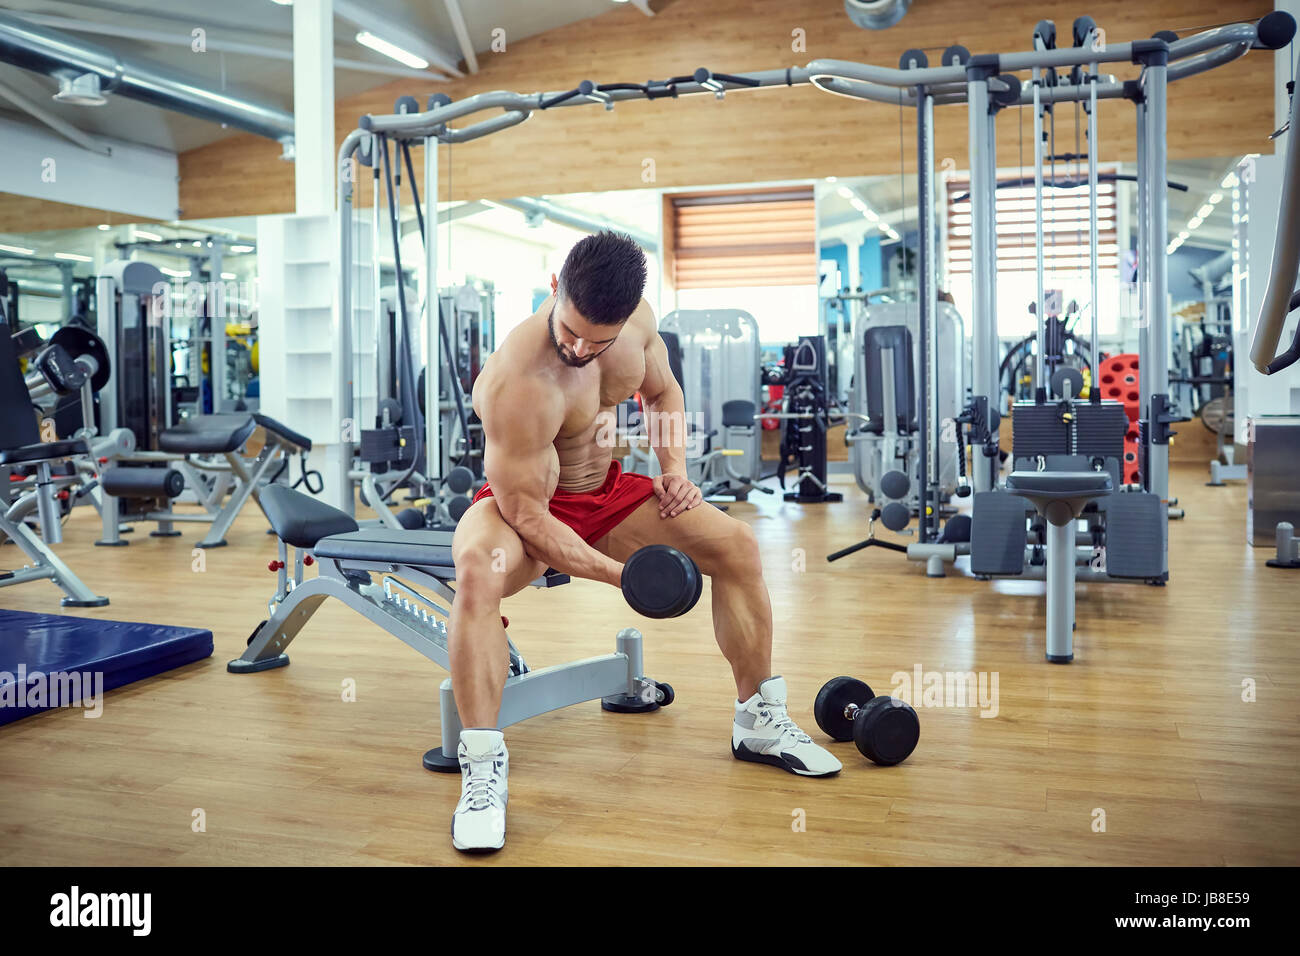 Bodybuilder does exercises with dumbbells in the gym - Stock Image